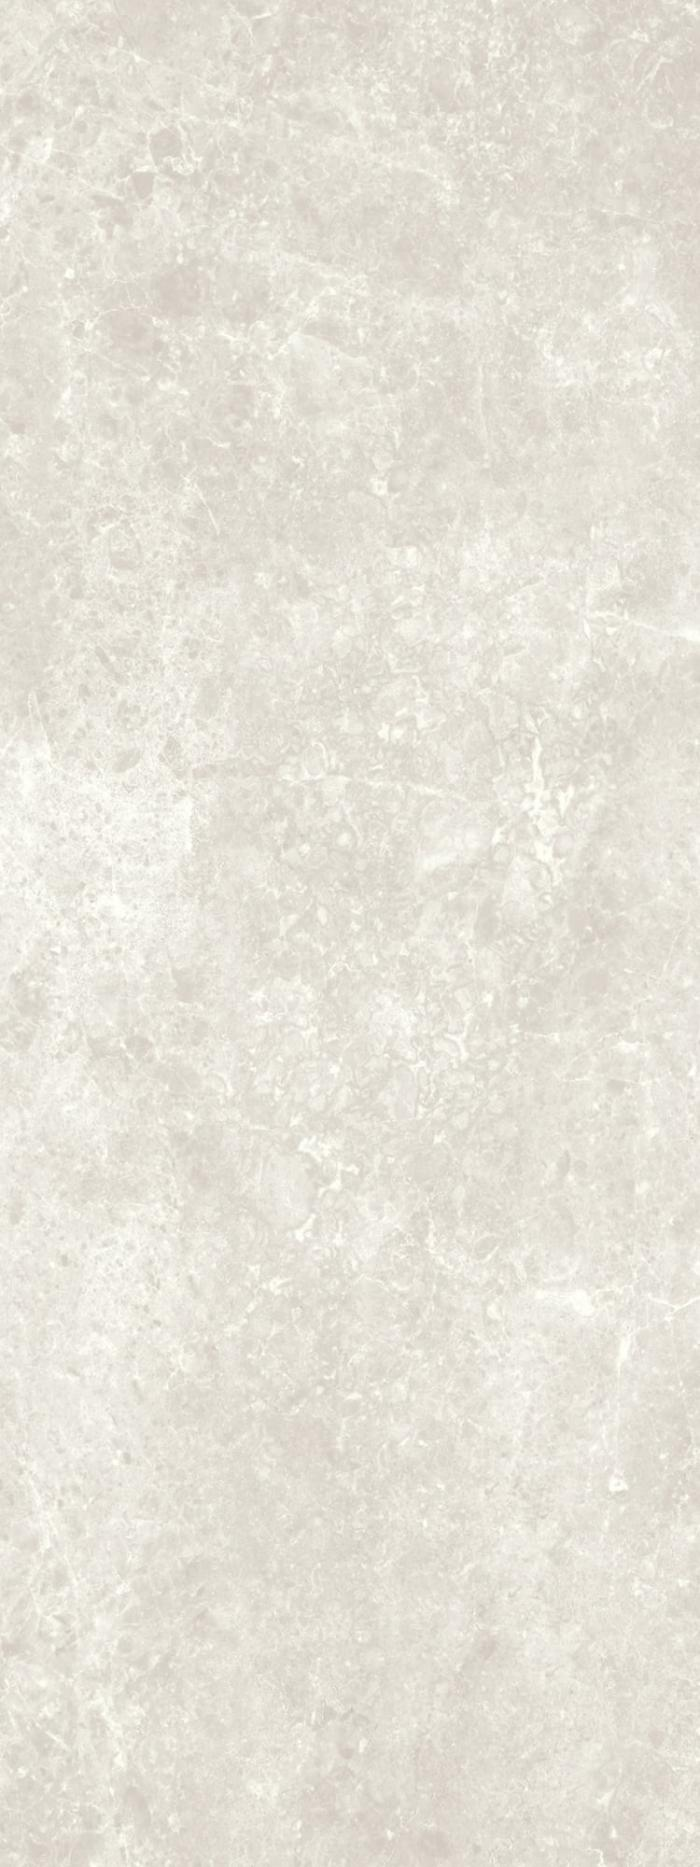 Marble Light Grey